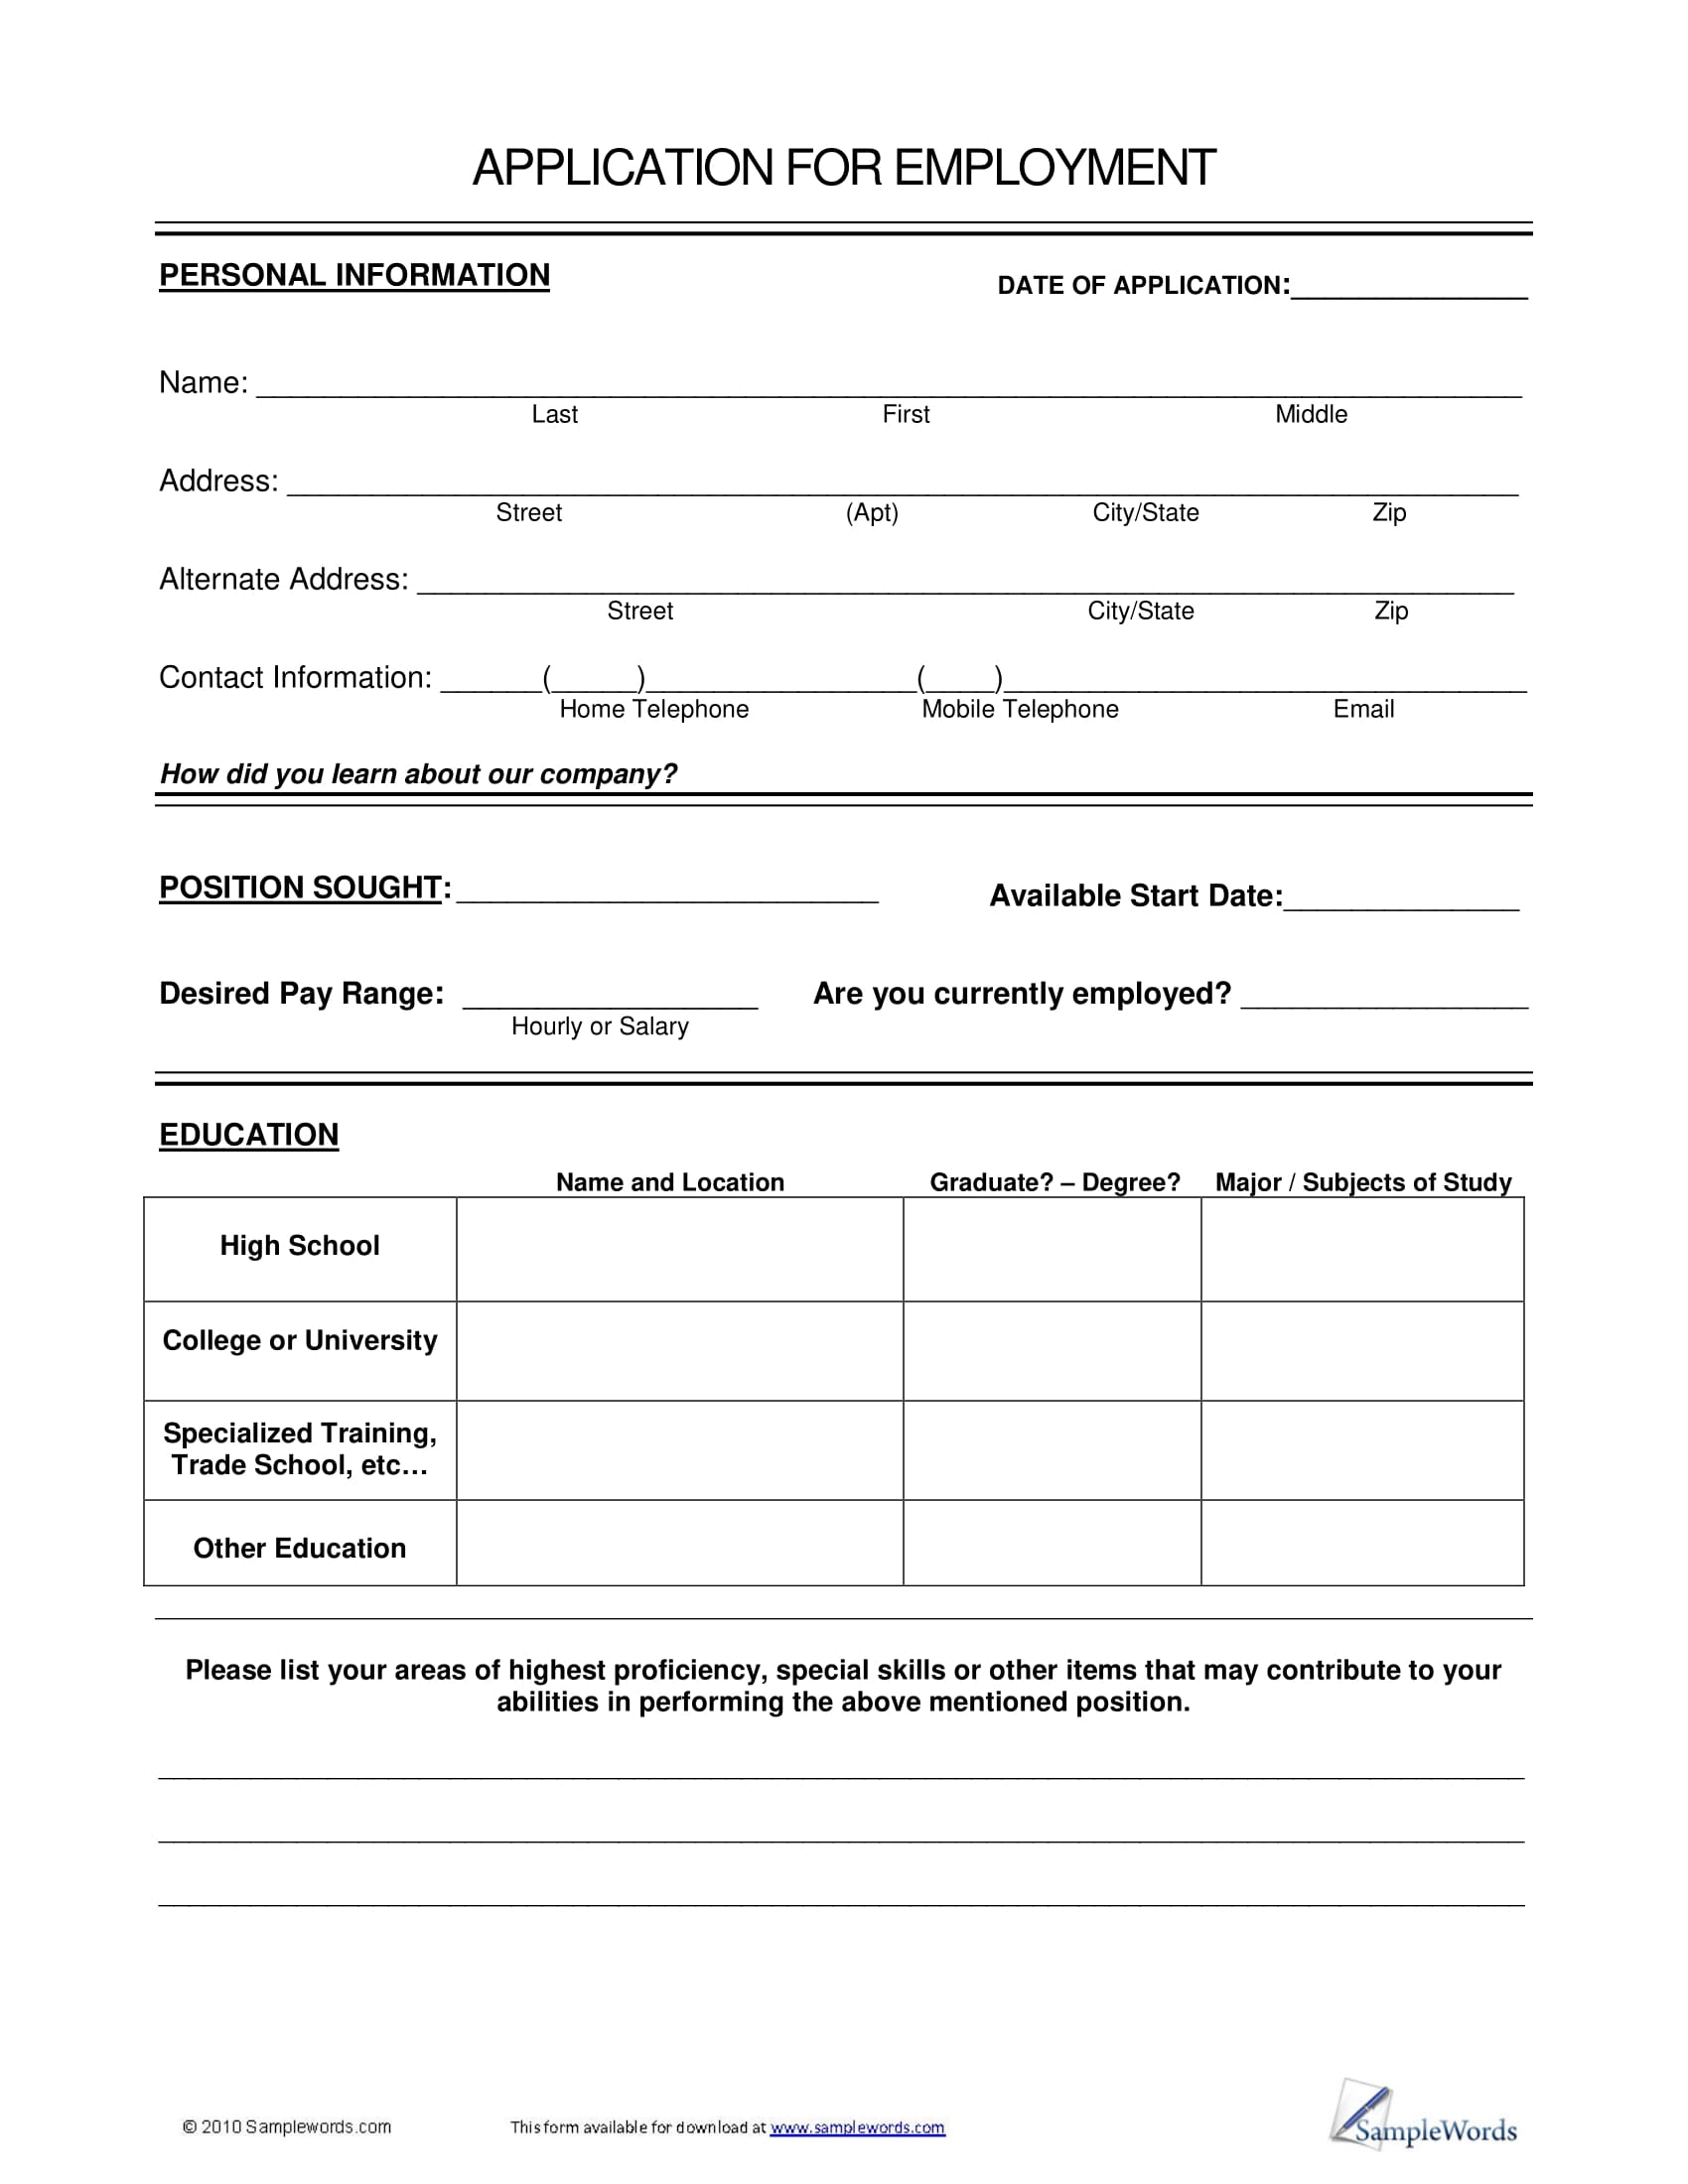 basic job application form example